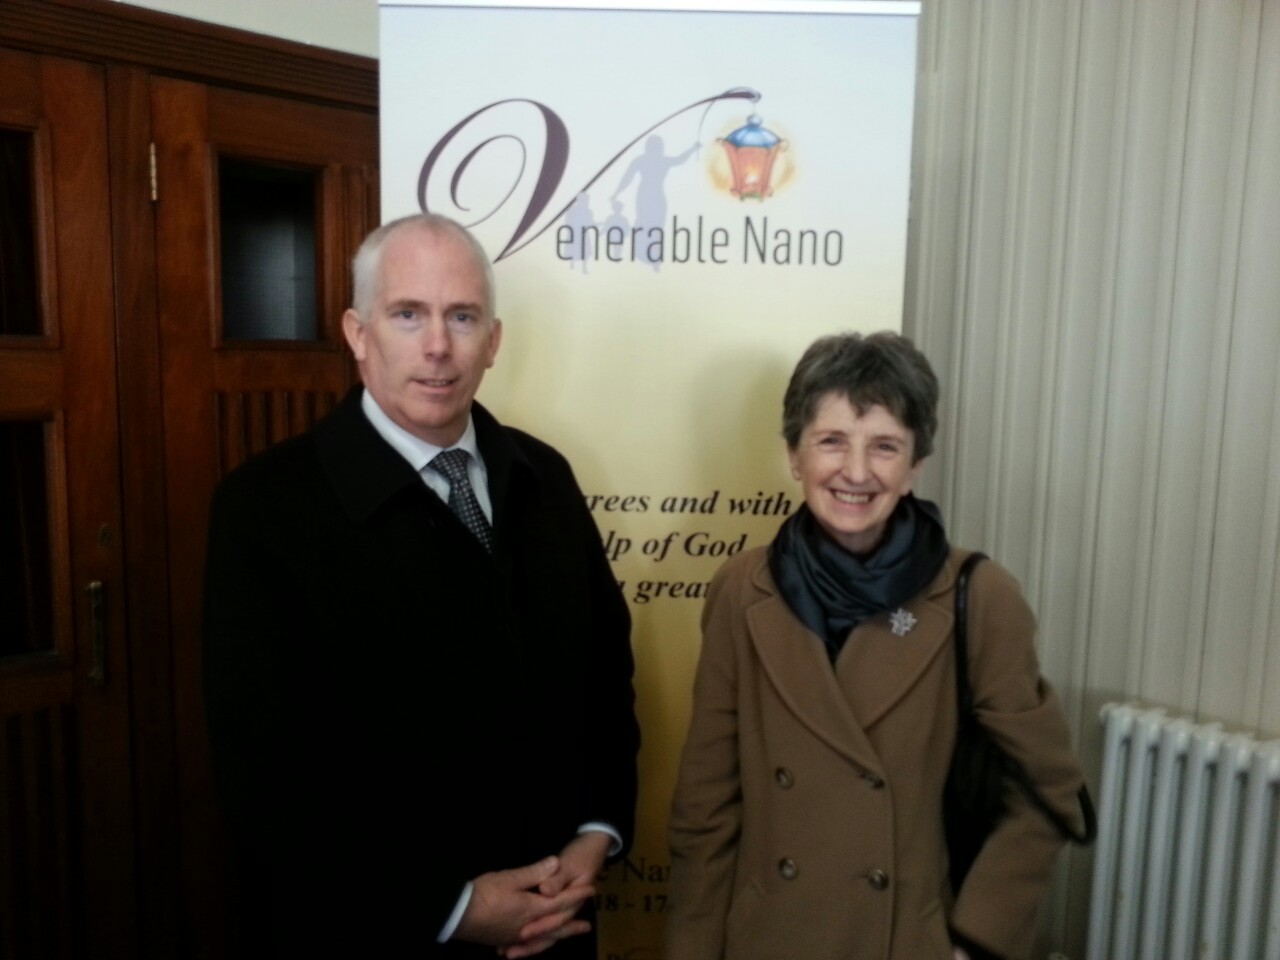 Venerable Nano Nagle.  Sr. Ursula Lawler, Chairperson Board of Management and Principal Joe Sweeney attending mass to celebrate the declaration by Pope Francis that Nano Nagle be Venerable. Nano is the founder of the Presentation Sisters, trustees of Colaiste Chiarain.